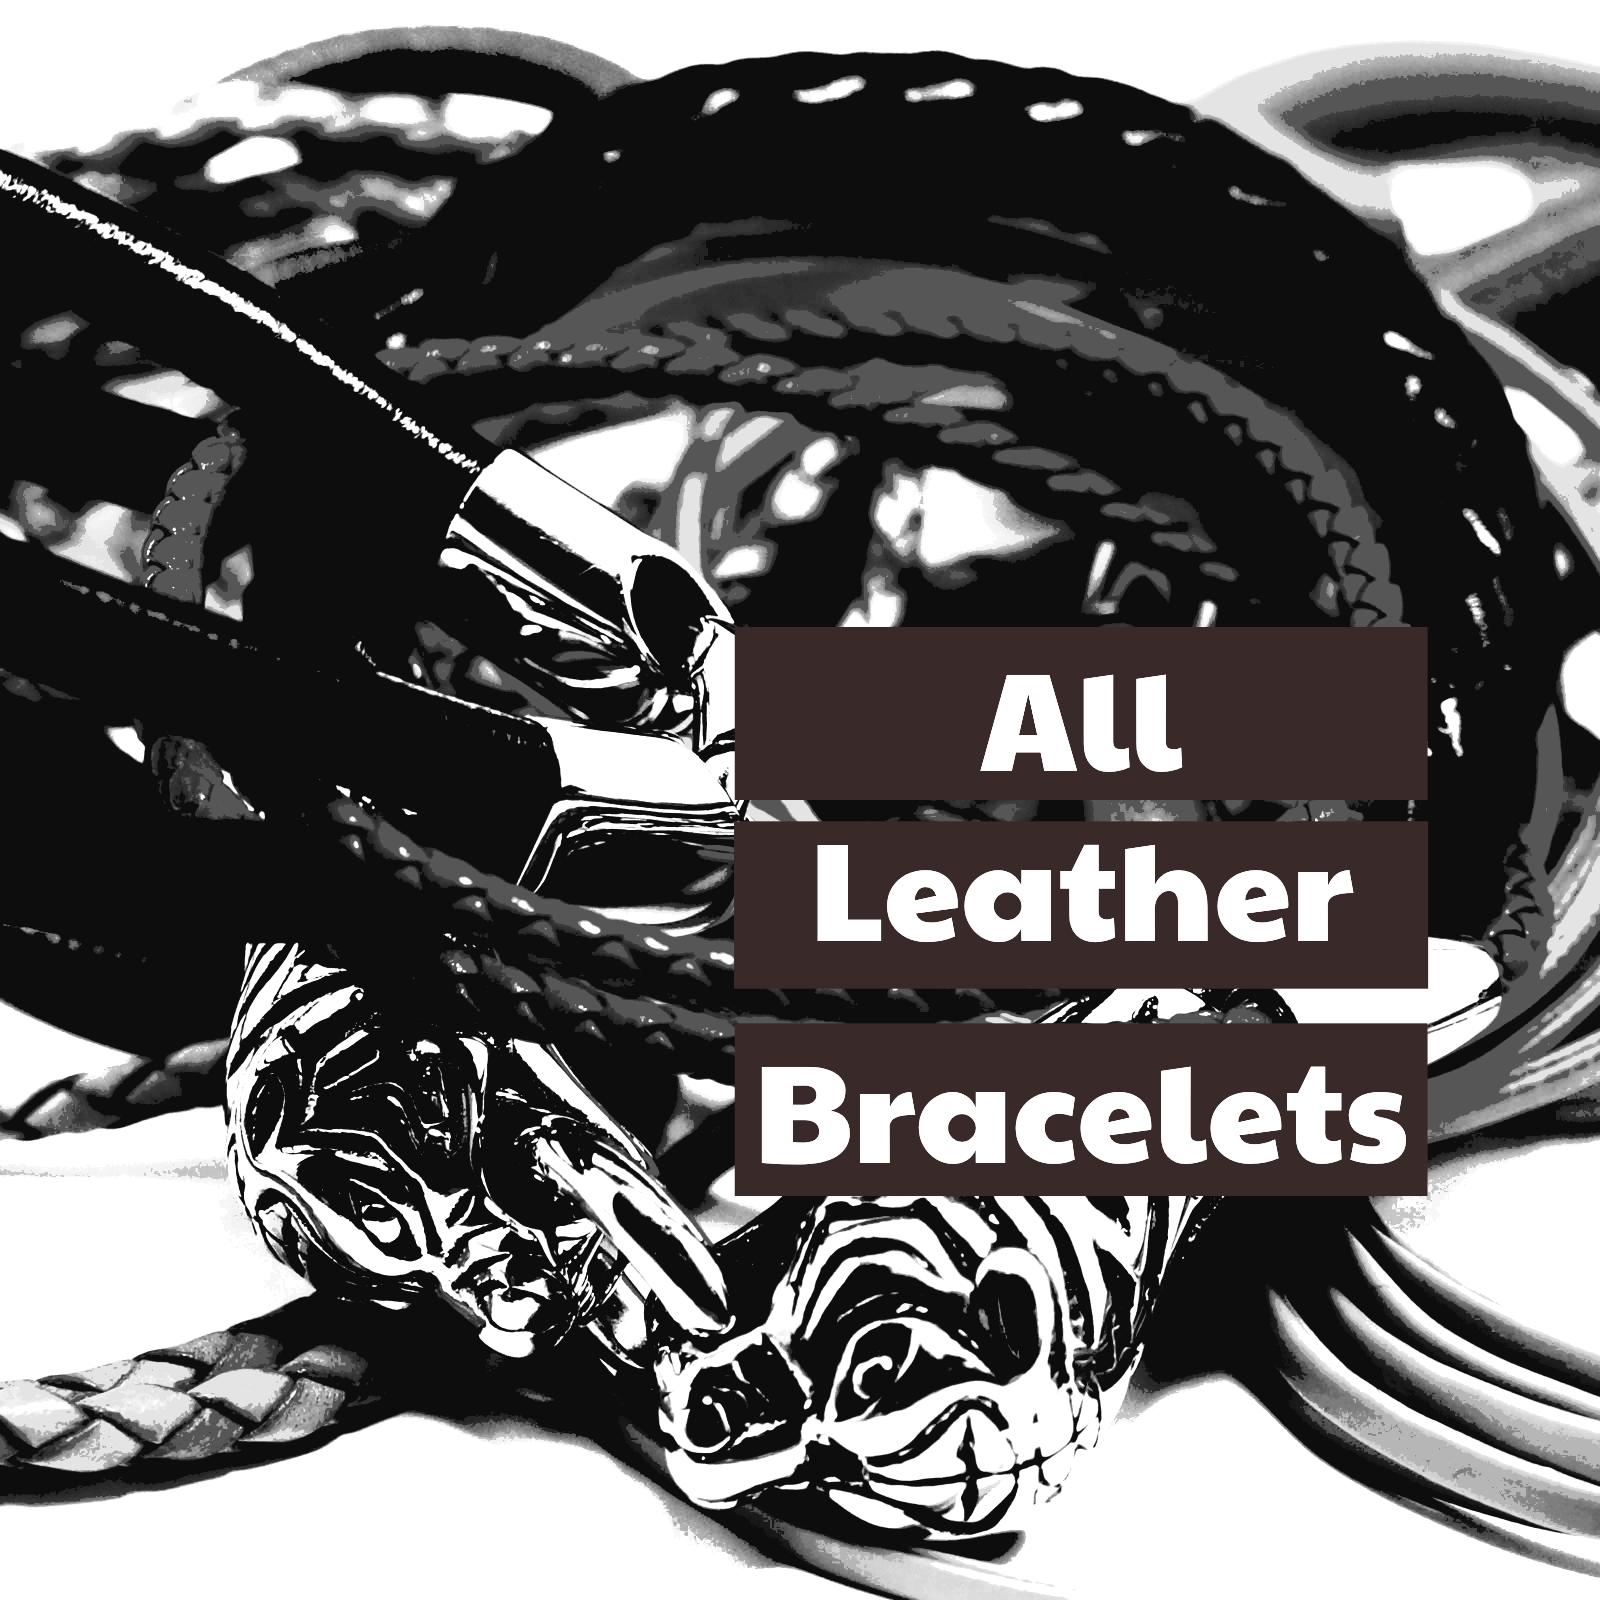 All our Leather Bracelets